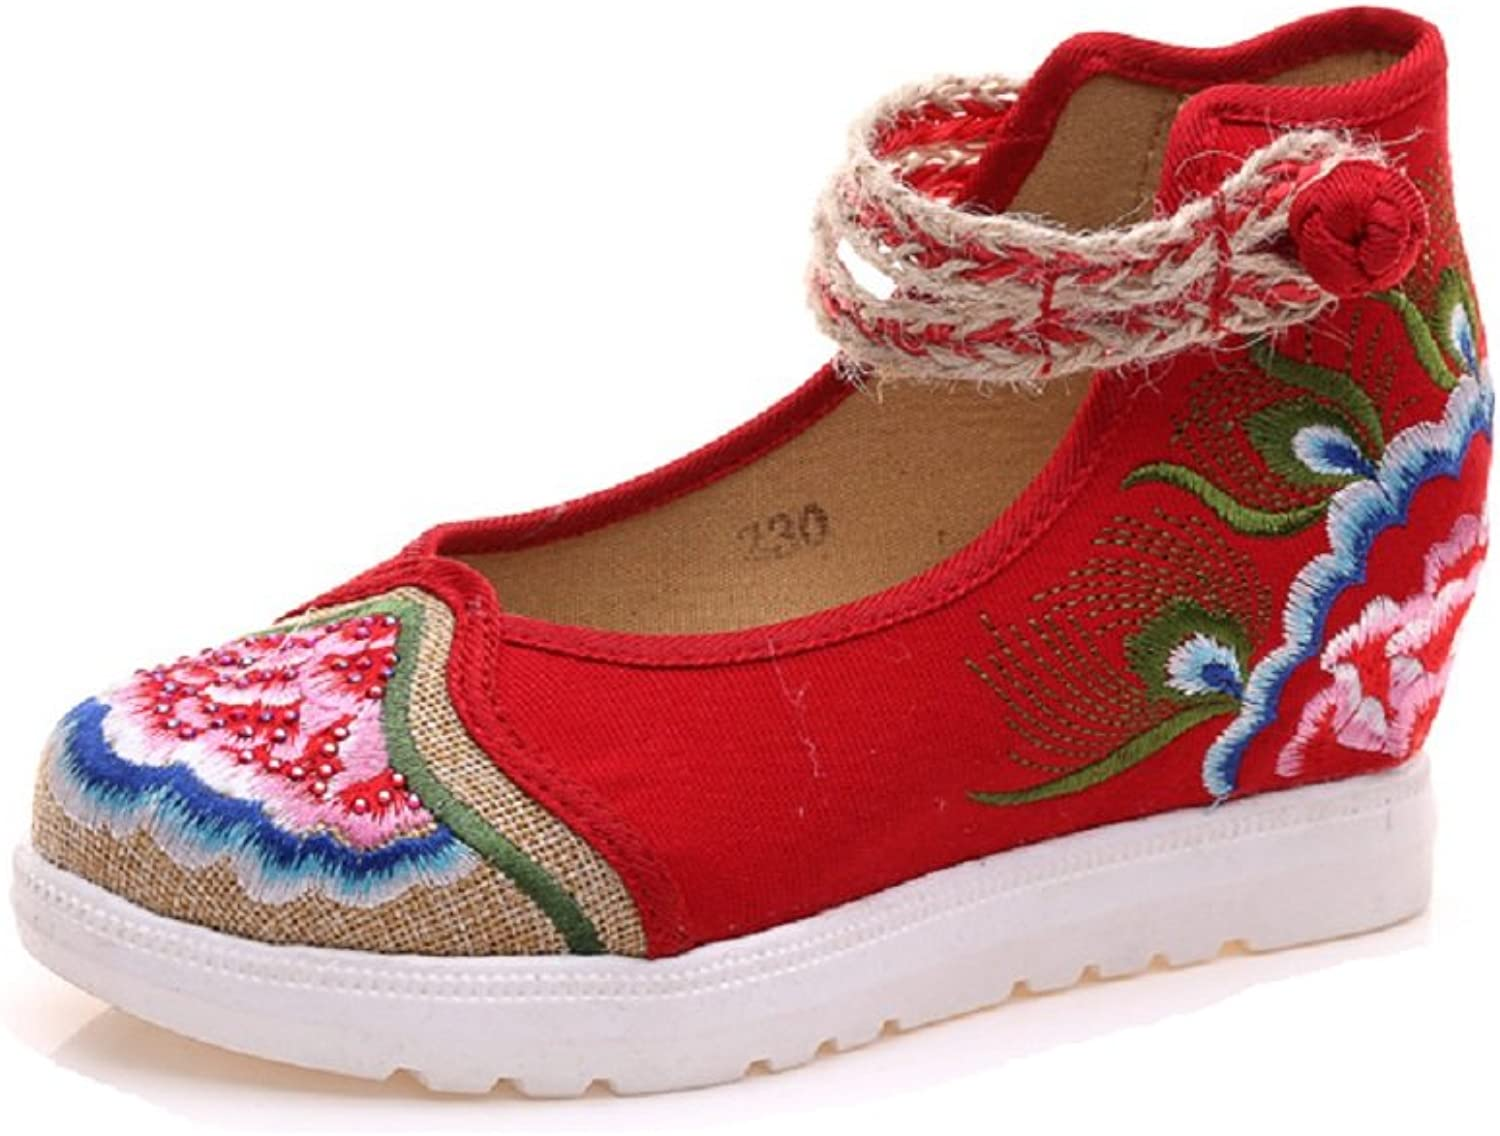 Tianrui Crown Women's Embroidery Flower Flats Ballet shoes Increasing shoes Sandals